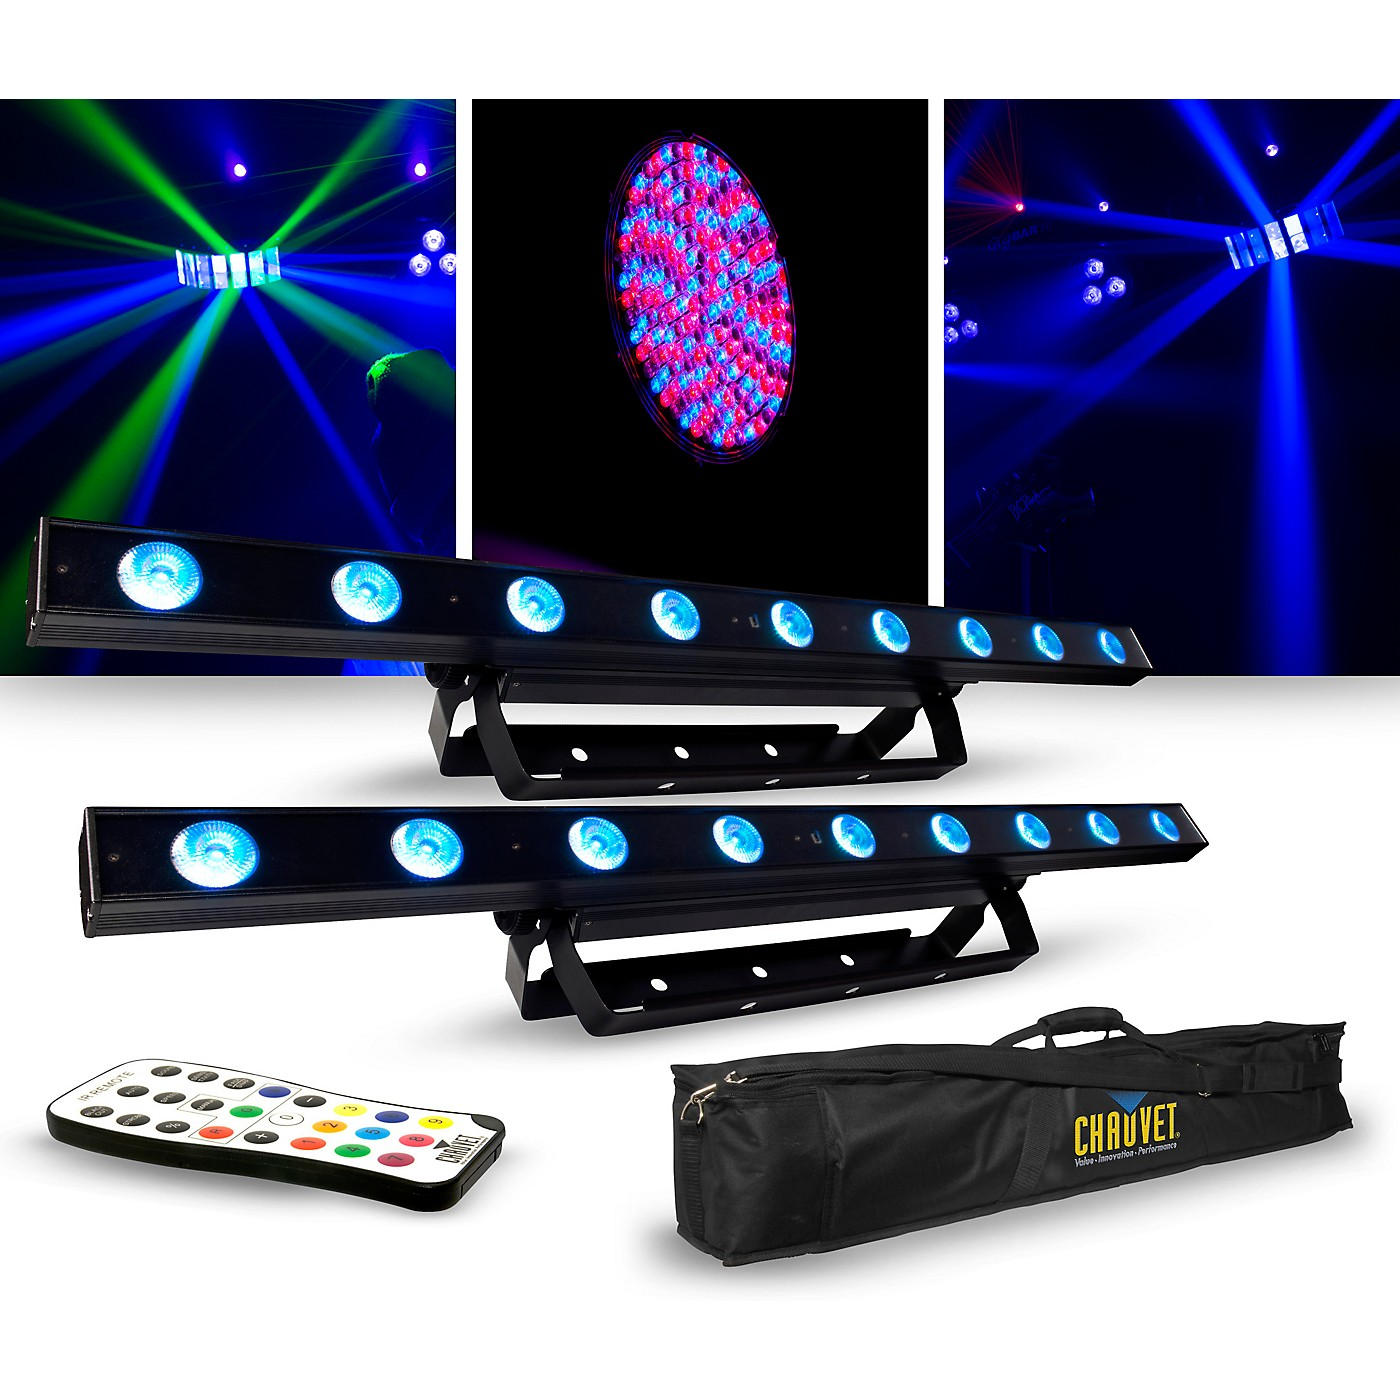 CHAUVET DJ Lighting Package with Two COLORband LED Effect Lights, IRC-6 and D-Fi Controllers thumbnail